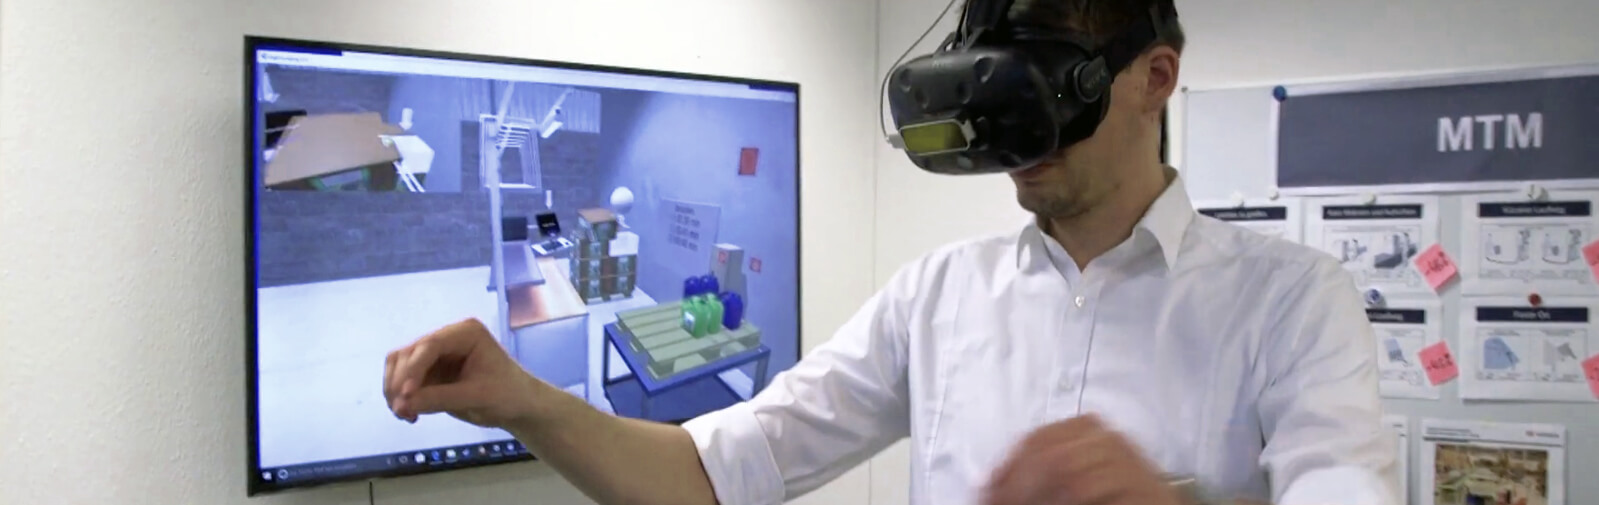 Learning by gaming: Serious gaming and virtual reality at DB Schenker